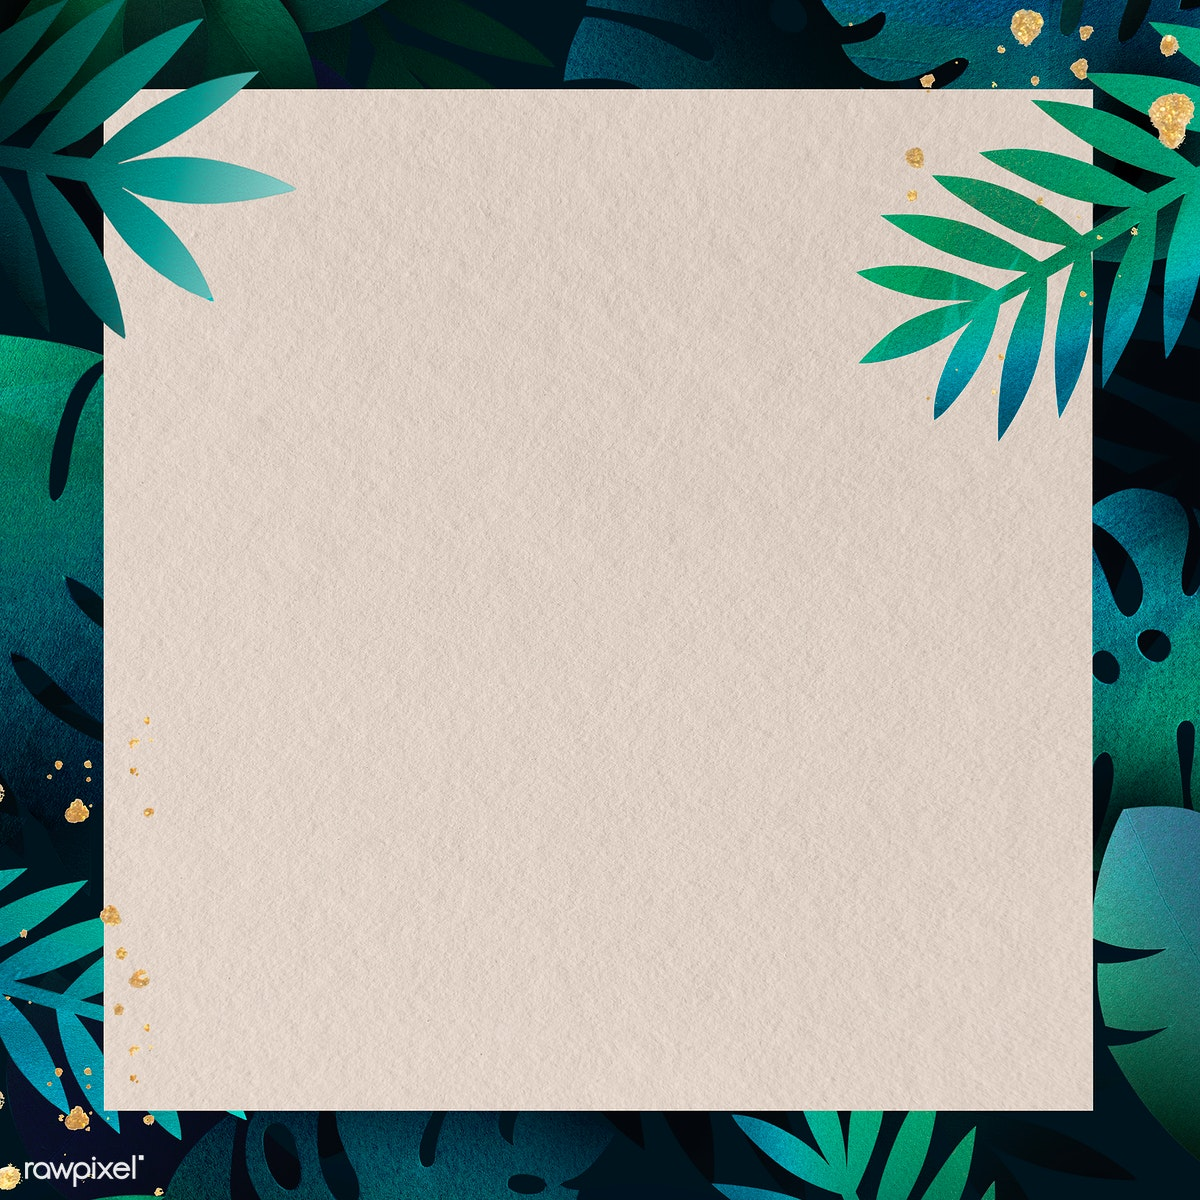 Download premium image of Blank square leafy frame design 1219695